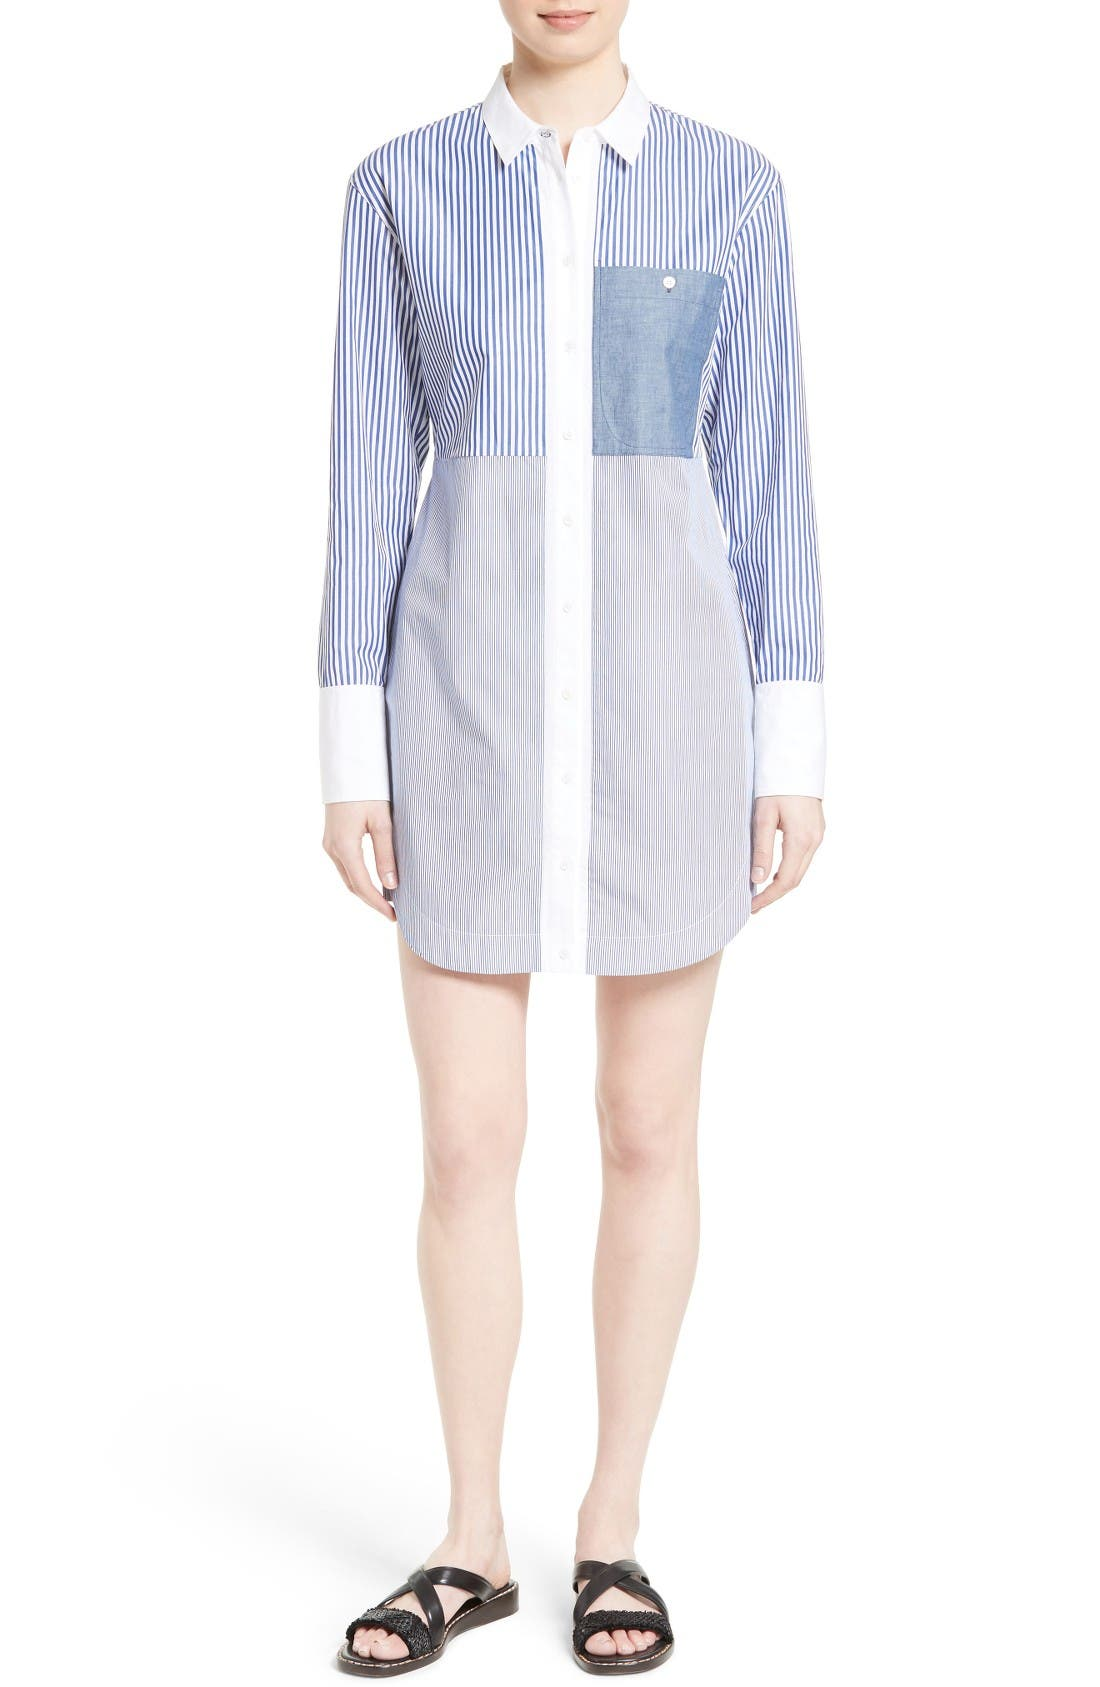 ELIZABETH AND JAMES Jay Stripe Shirtdress